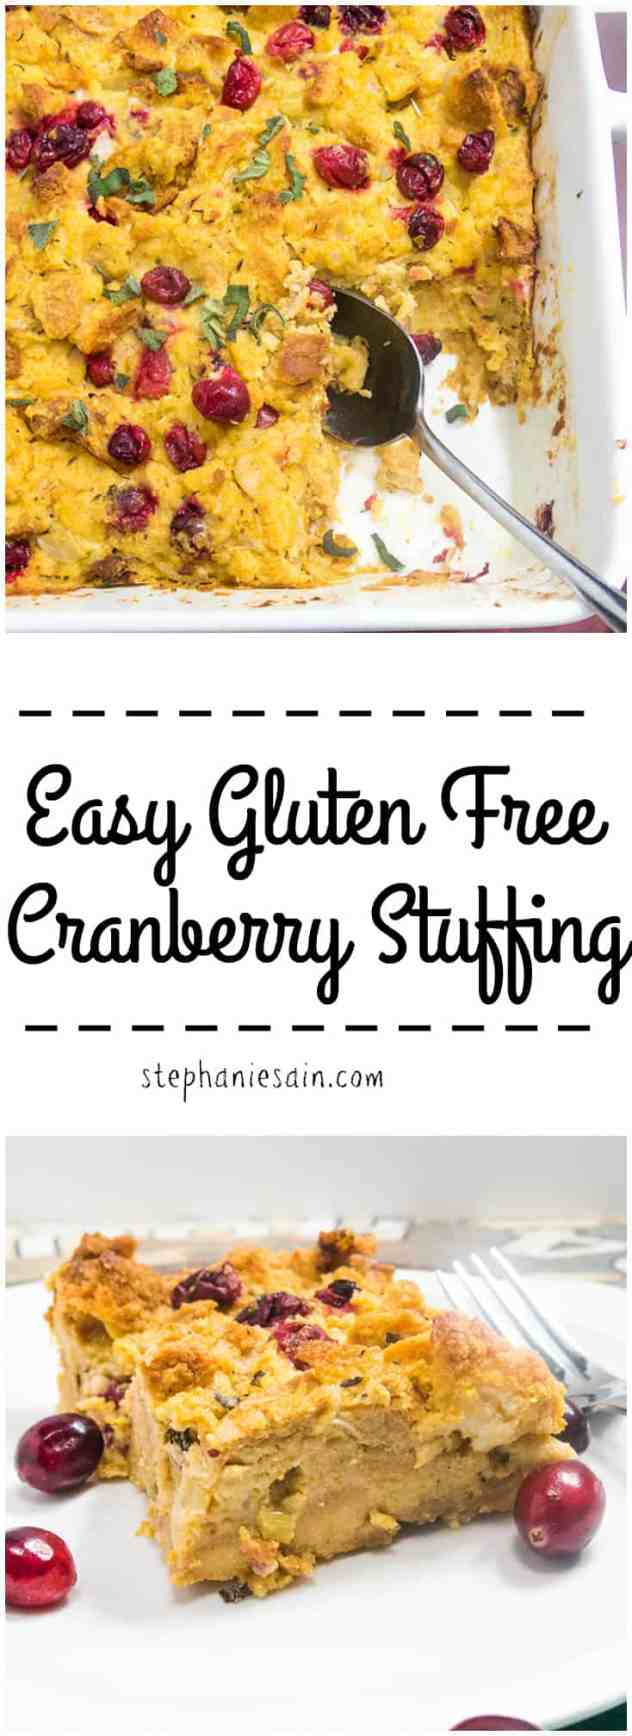 Easy Gluten Free Cranberry Stuffing is a tasty, moist stuffing perfect for the holiday table. Vegetarian and Gluten Free.